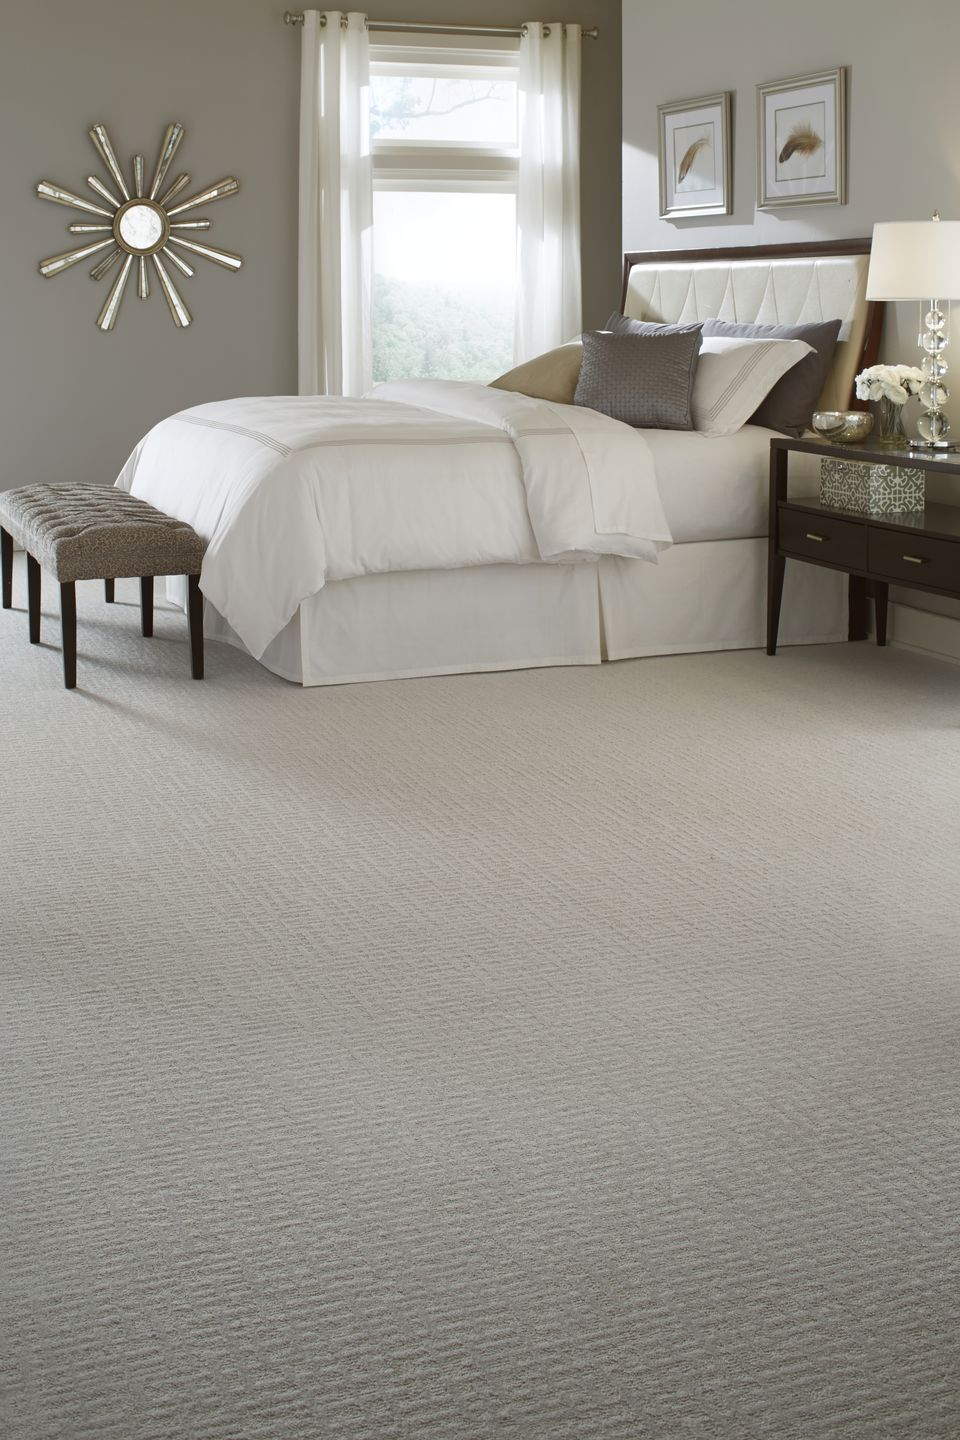 Carpet color trends for 2016 carpet vidalondon for Bedroom trends 2016